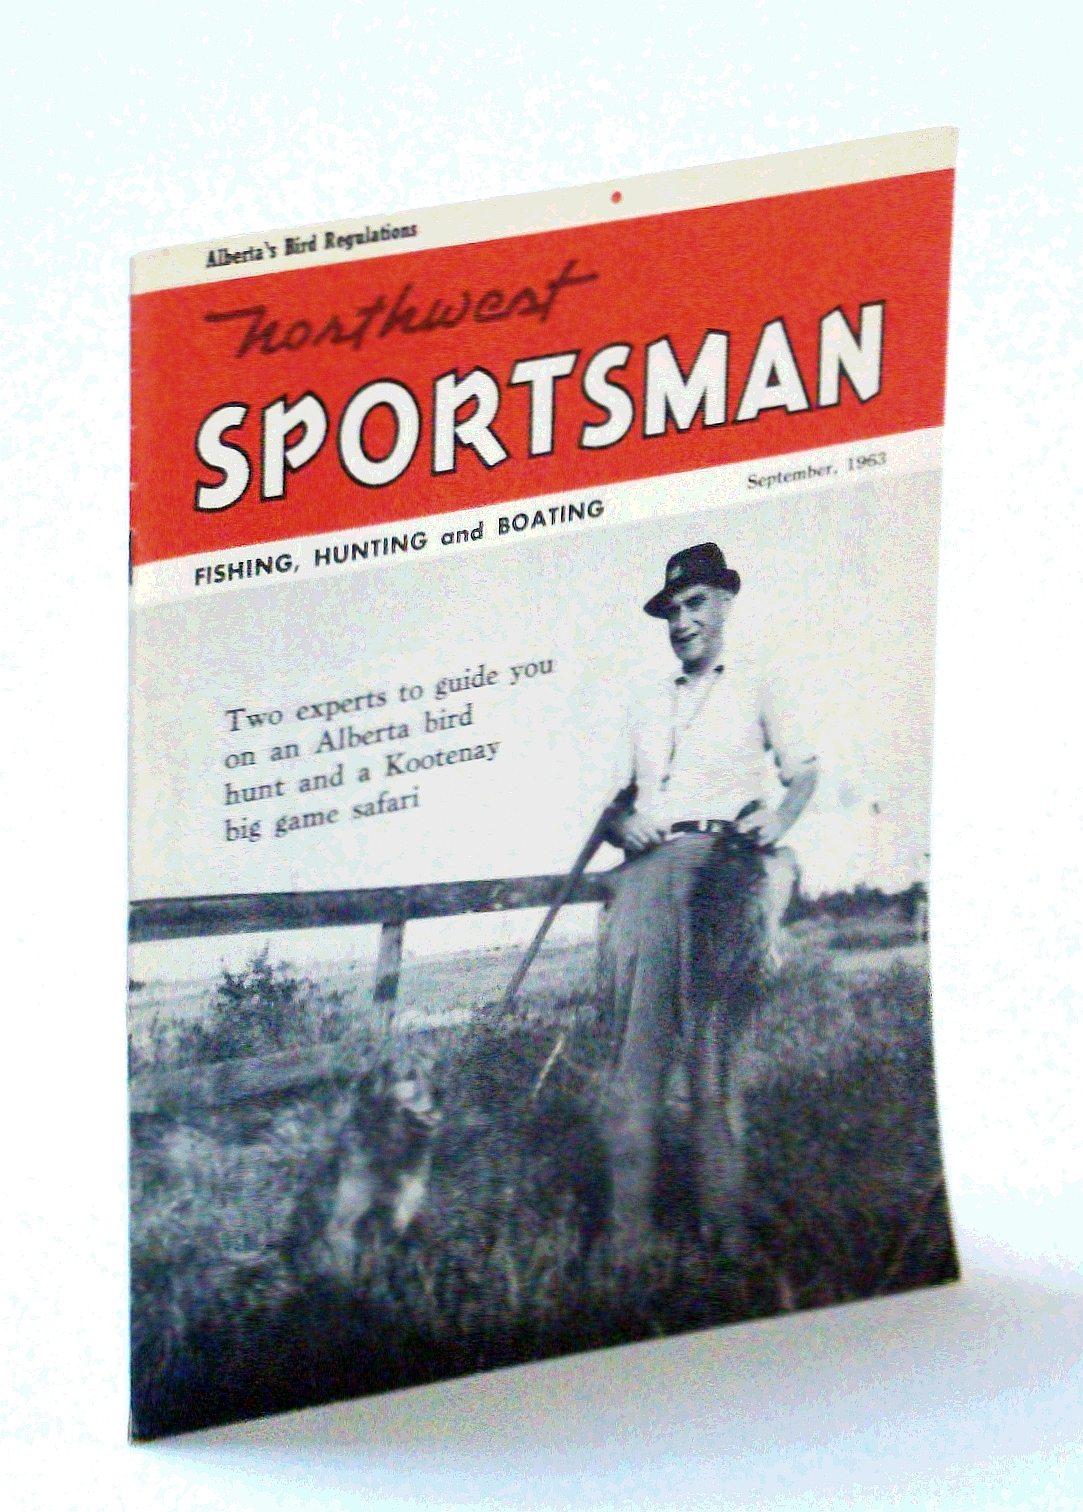 Image for Northwest Sportsman Magazine - Fishing, Hunting and Boating, September [Sept.] 1963 - Cover Photo of Chris Burton of the B.C. Gun Dog Club